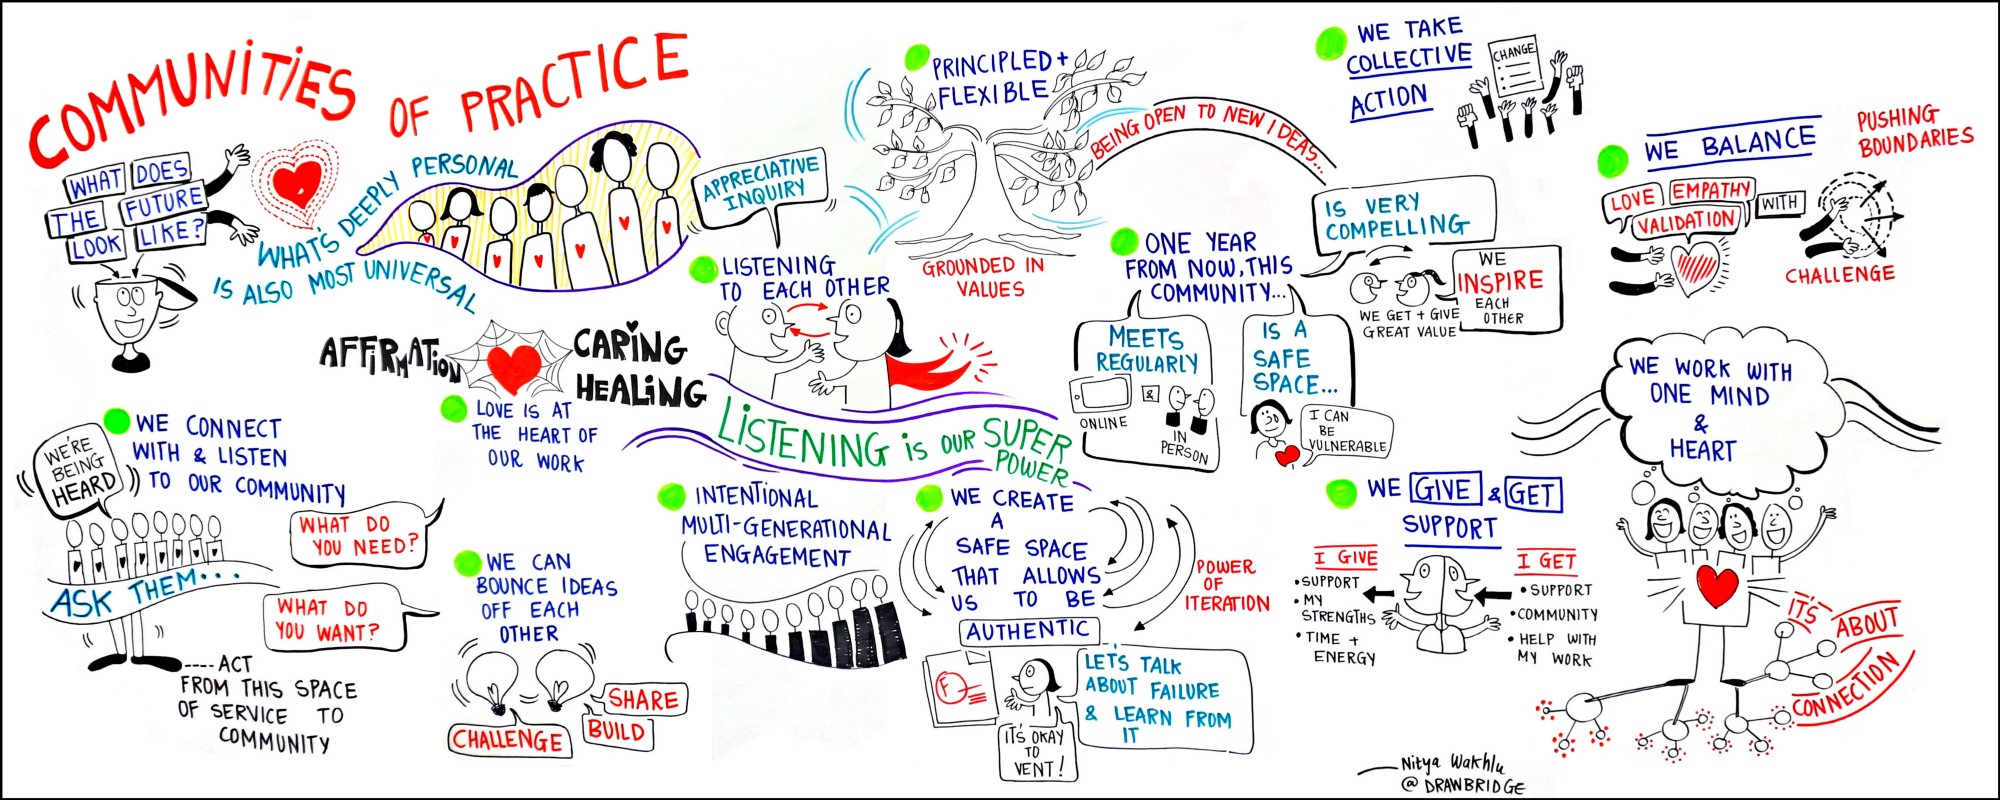 Graphic illustration by Nitya Wakhlu, produced at the Experience Engagement conference in October 2015